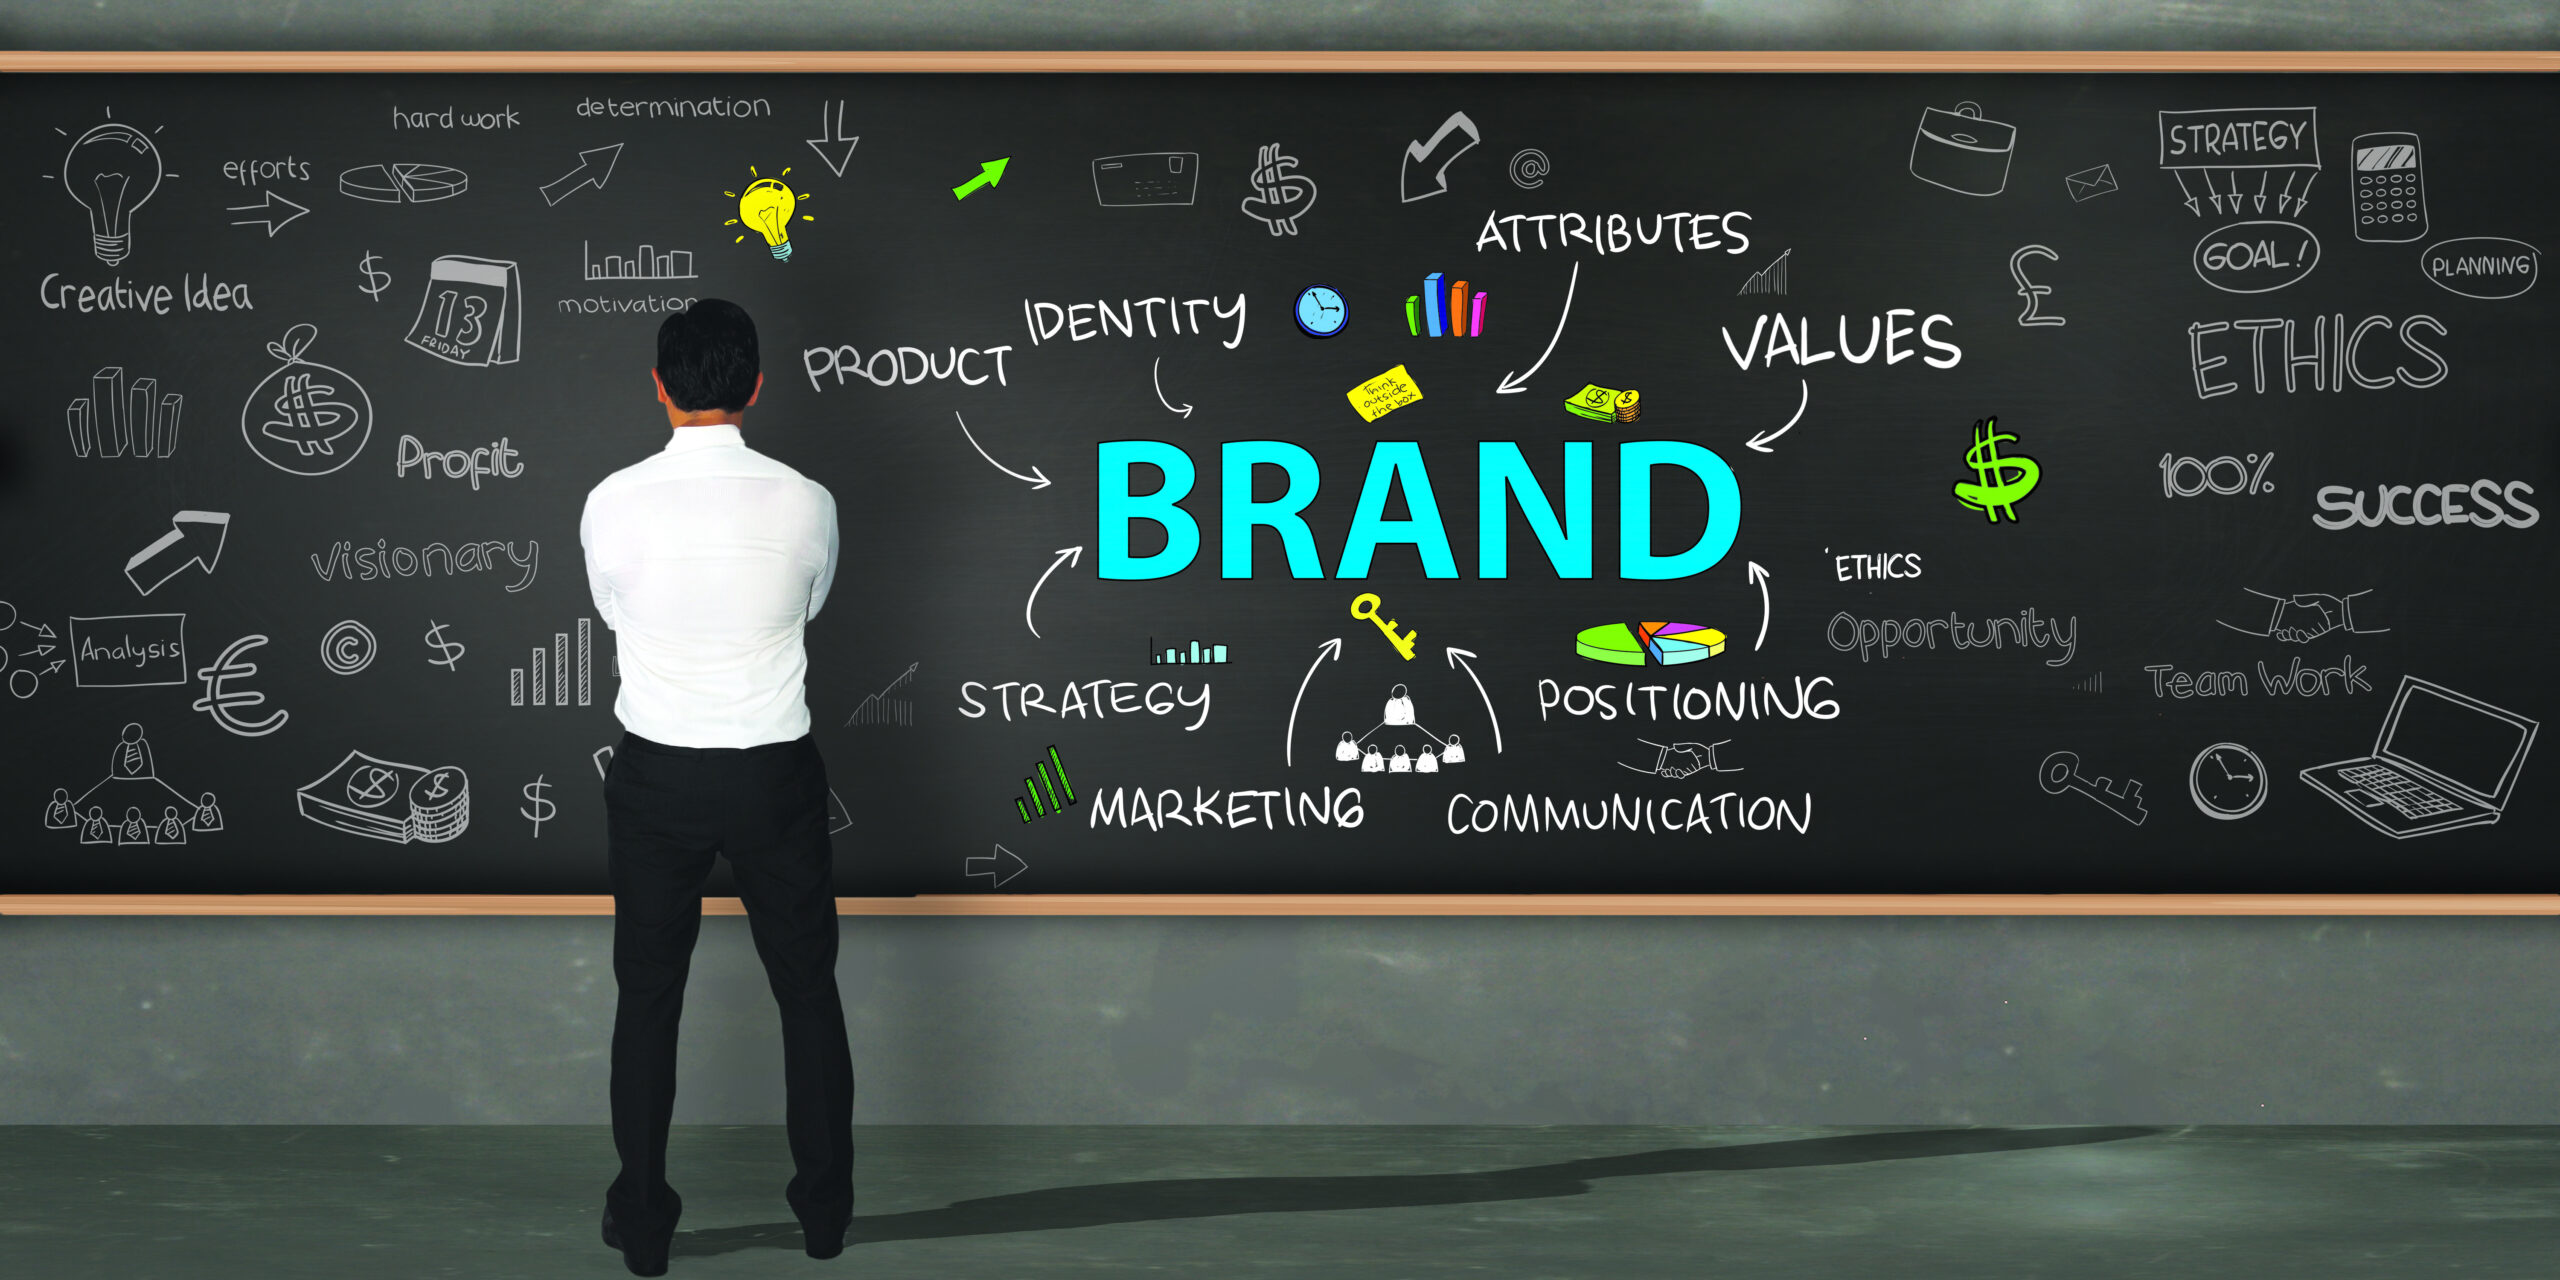 Brand Development Strategy: The steps to building a unique brand